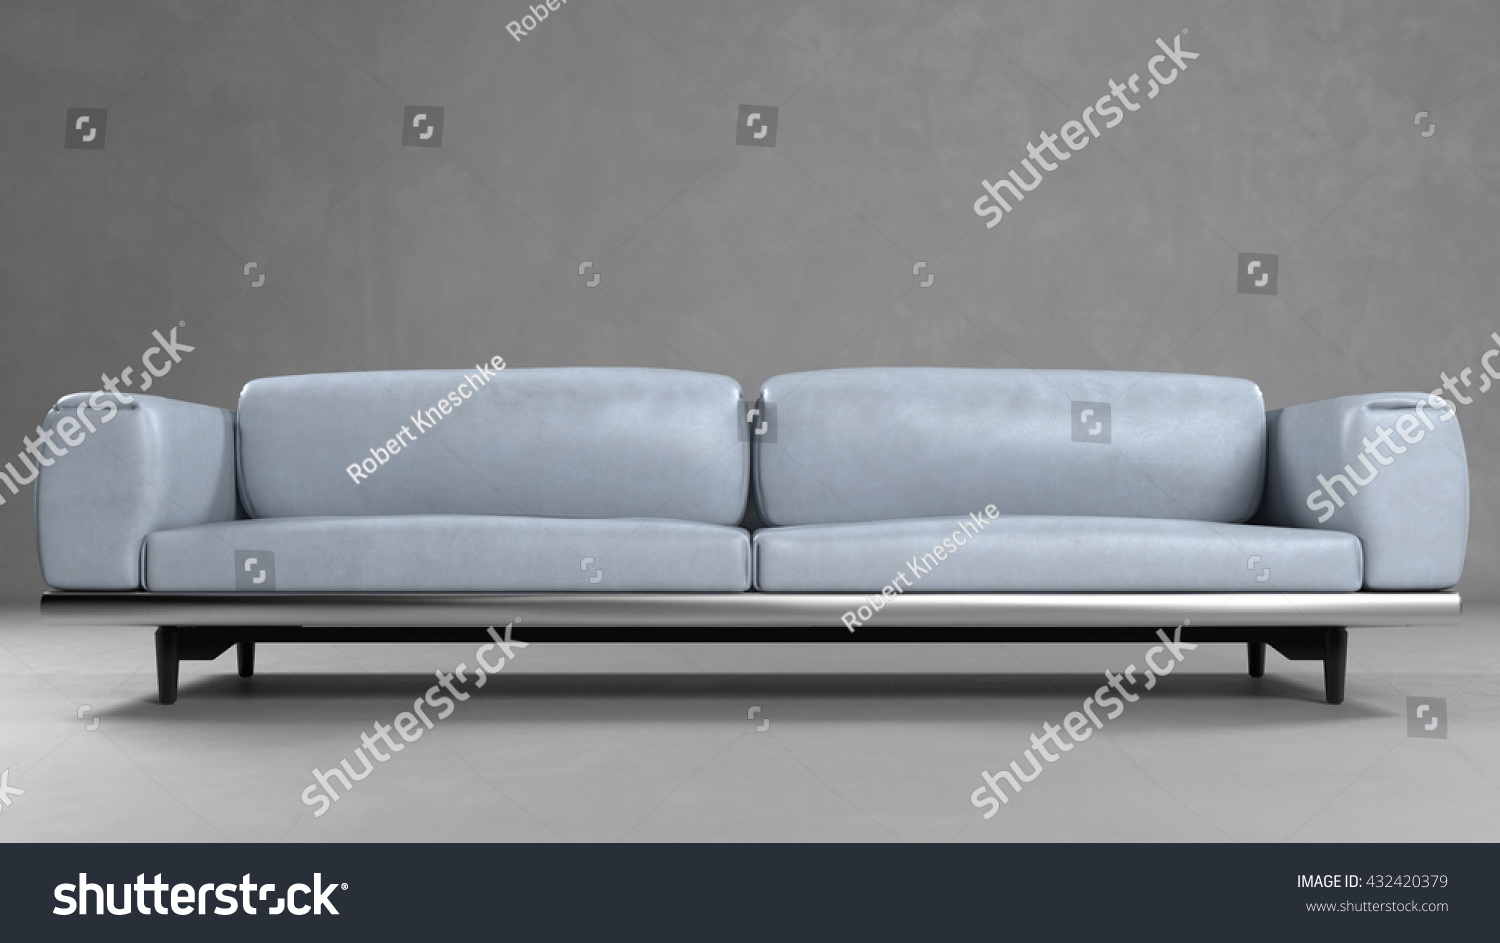 grey leather sofa in front of a concrete wall 3d rendering